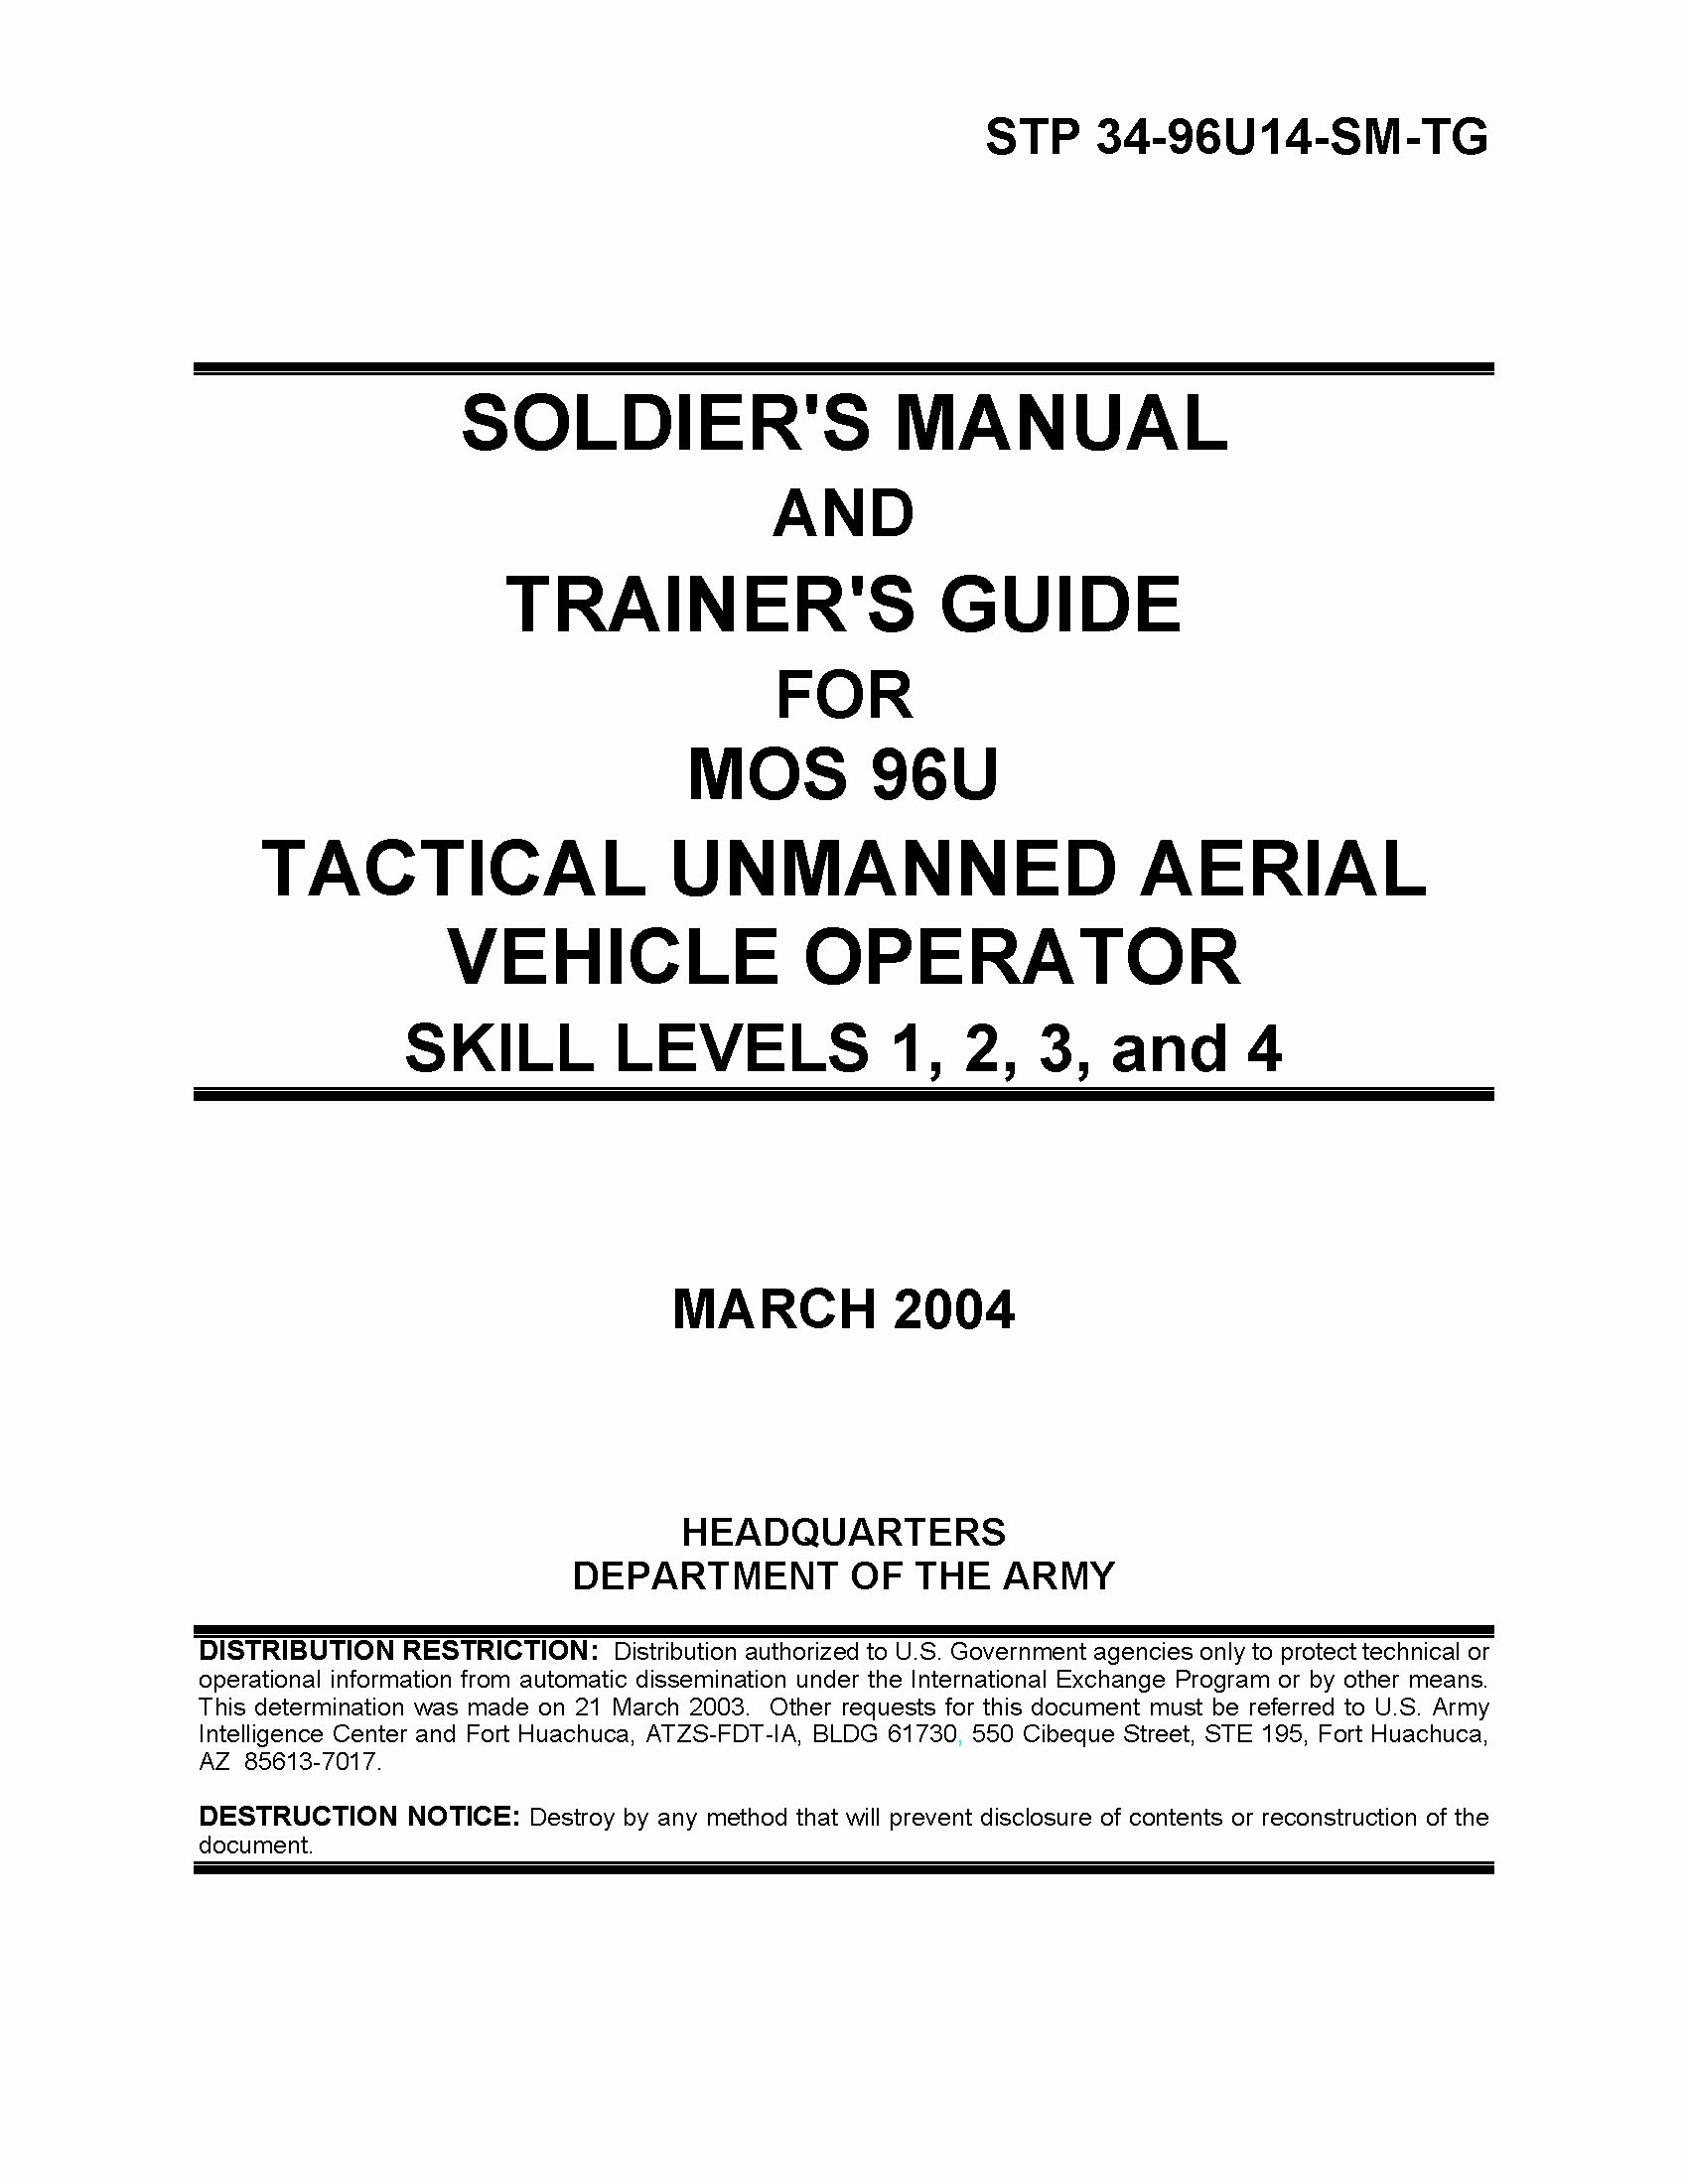 Ps form 3811 Template Unique Training Manual Pdf Olalaopx